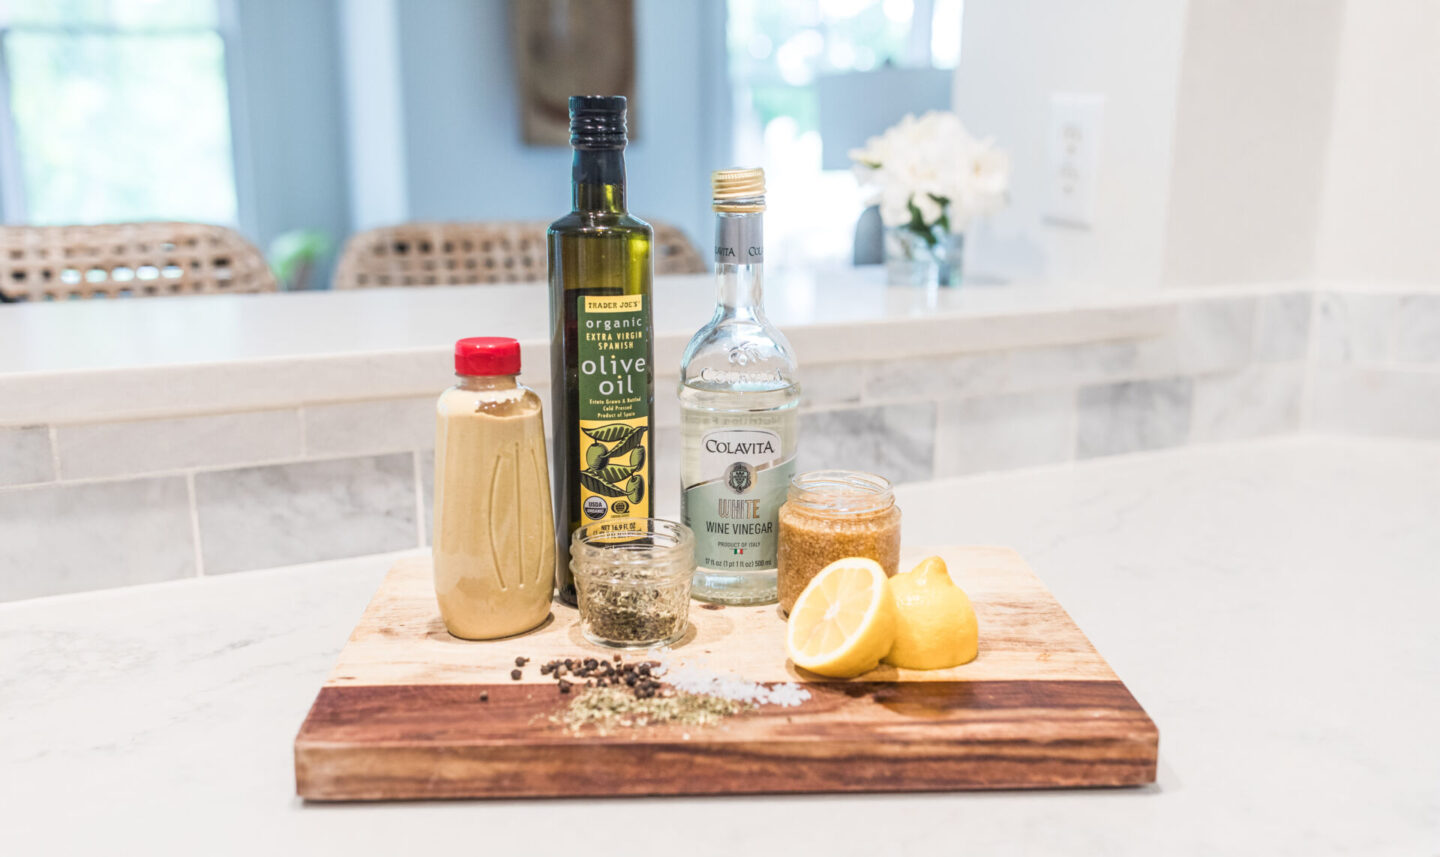 Easy Homemade Salad Dressing Recipe featured by top Atlanta lifestyle blogger, Moderately High Maintenance | Homemade Salad Dressing by popular Atlanta lifestyle blog, Moderately High Maintenance: image of olive oil, vinegar, lemons, minced garlic and spices on a wooden board.